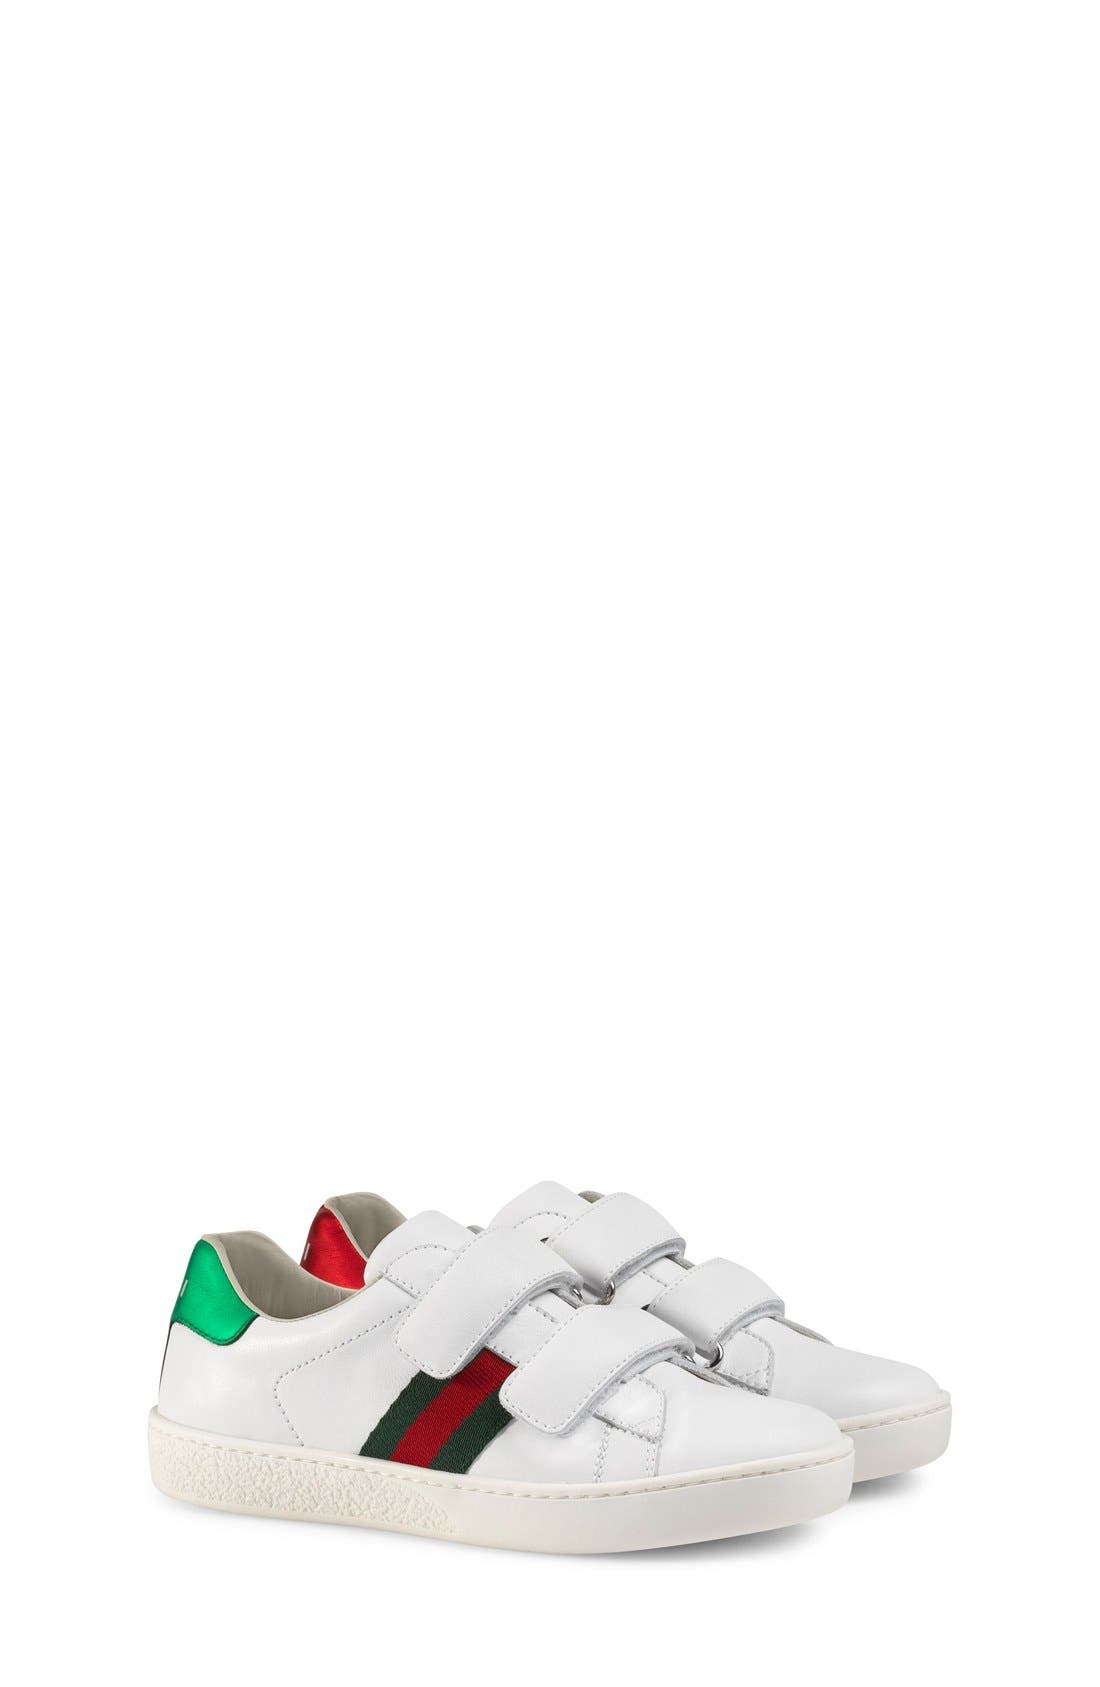 Infant Gucci Shoes Sale